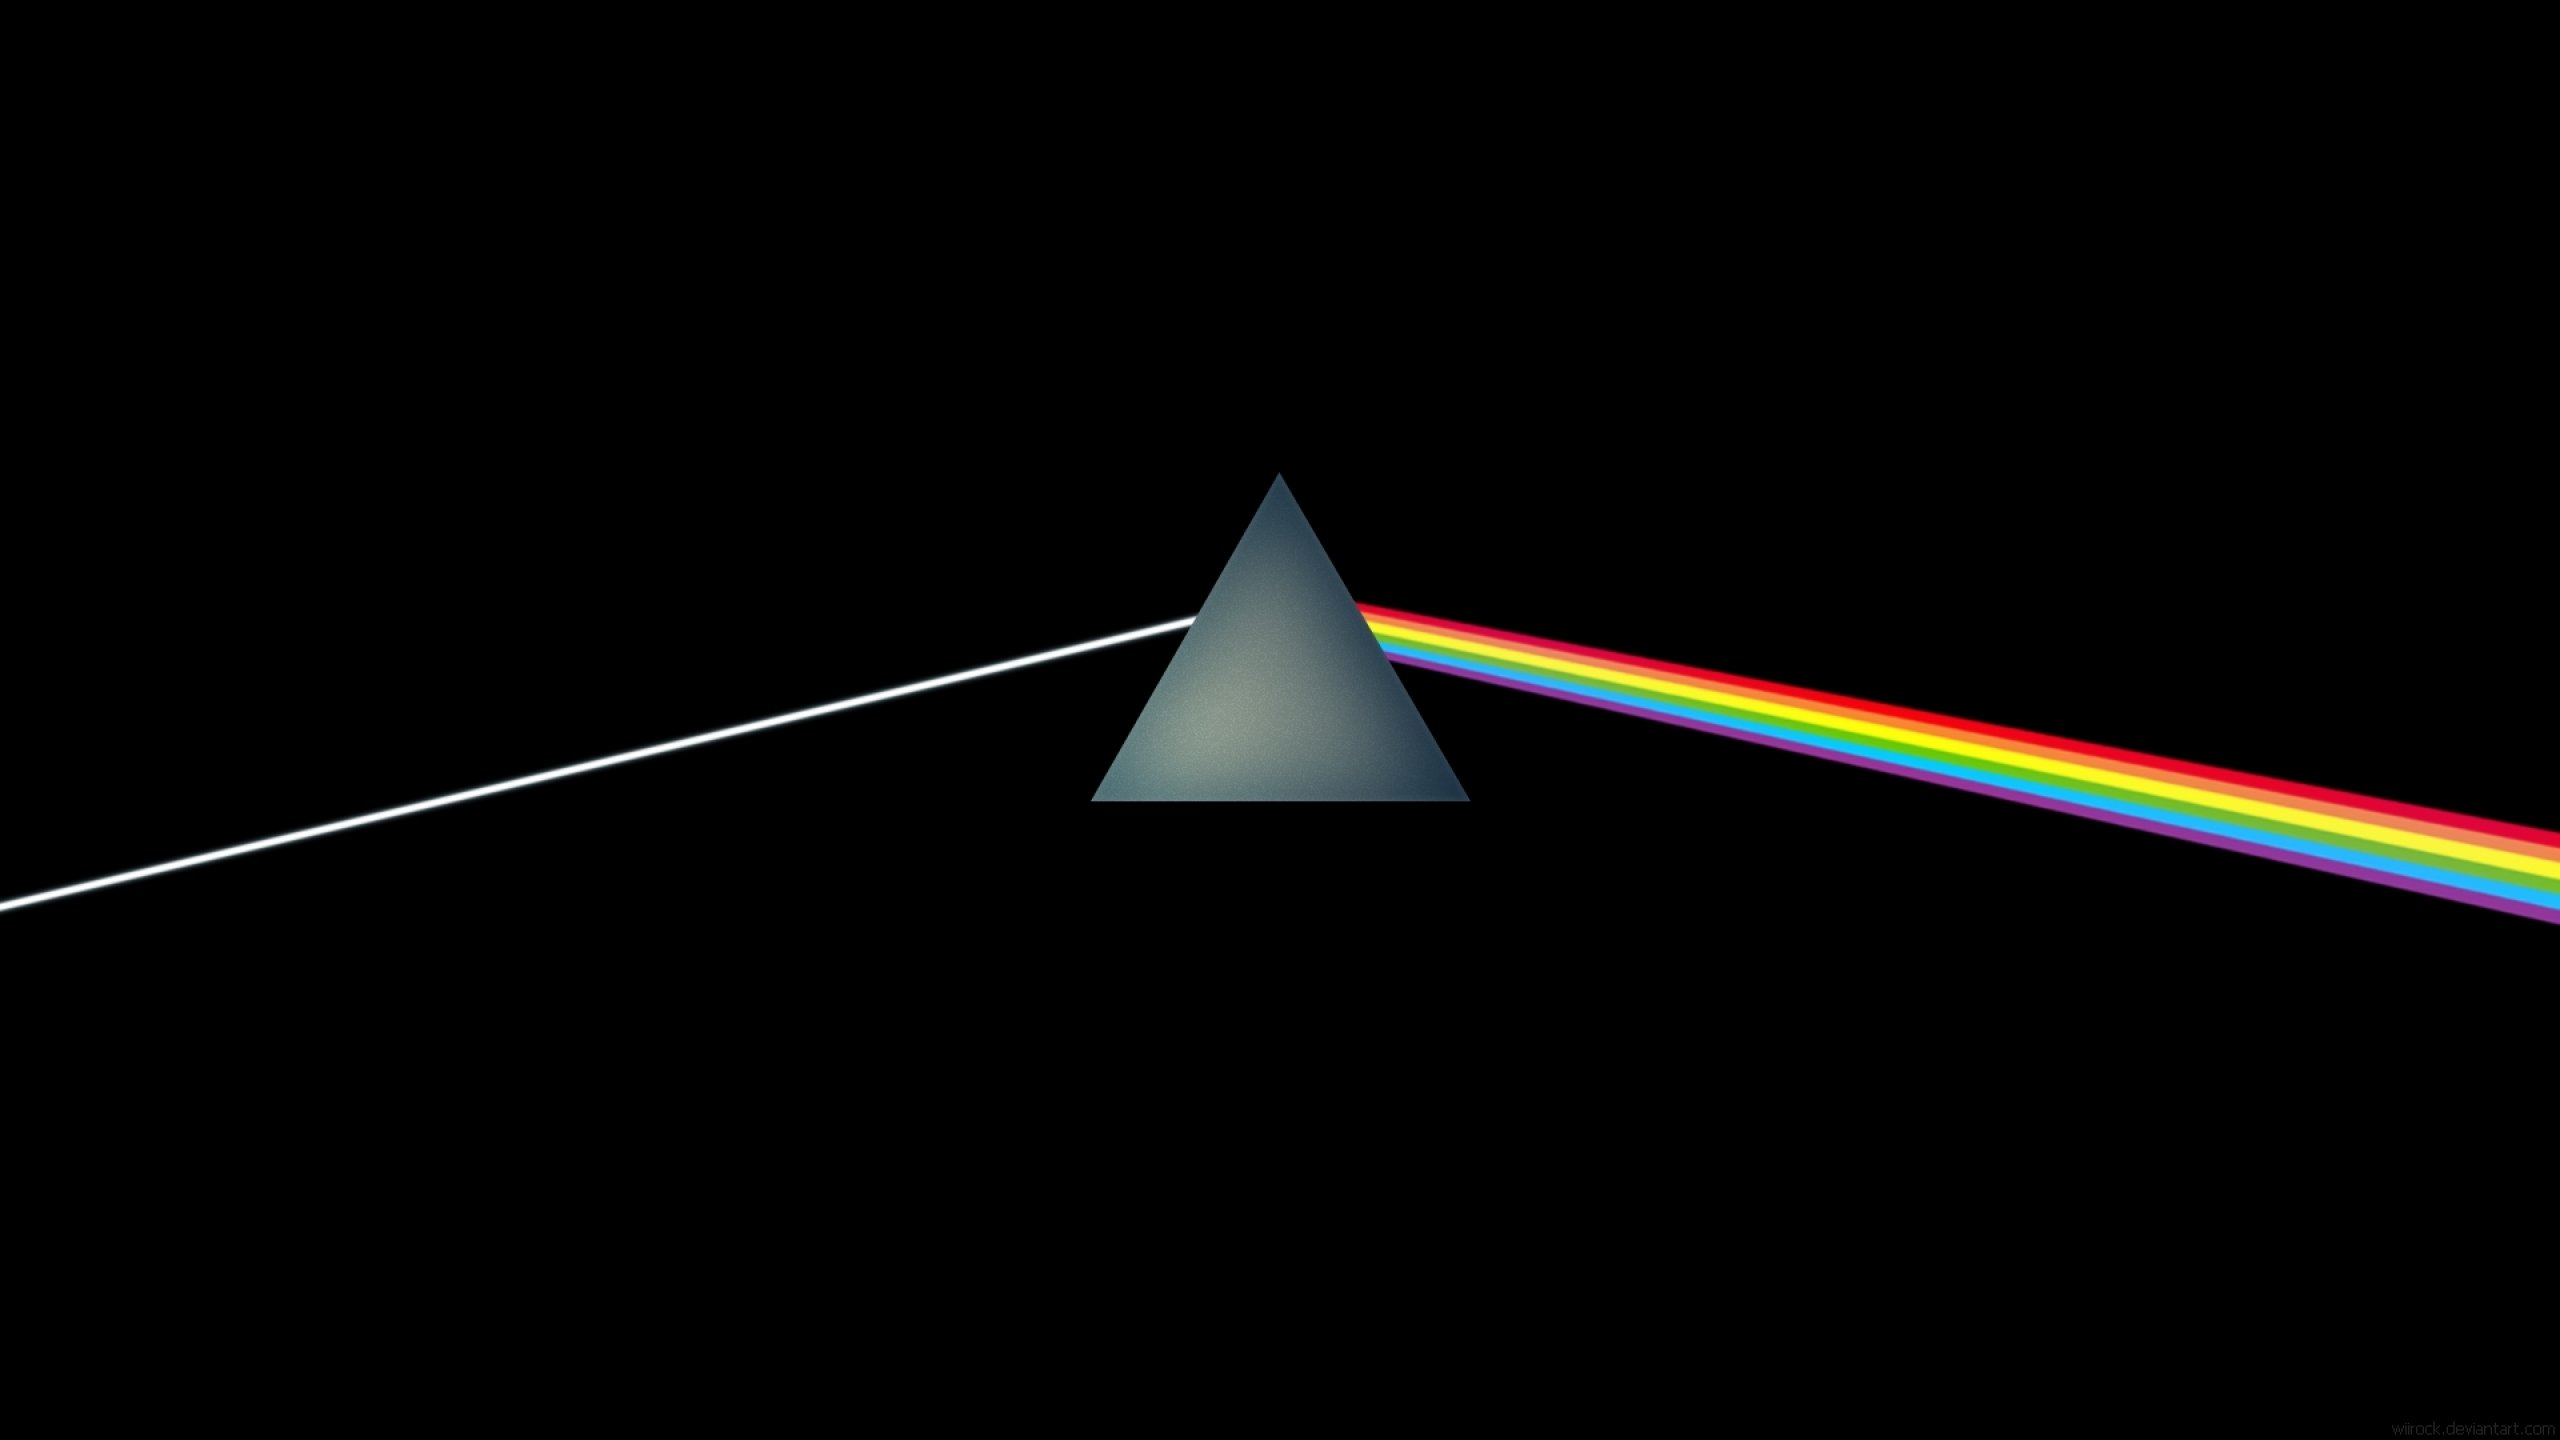 Dark Side Of The Moon Wallpaper Hd Image 22 Wide Wallpaperizcom 2560x1440